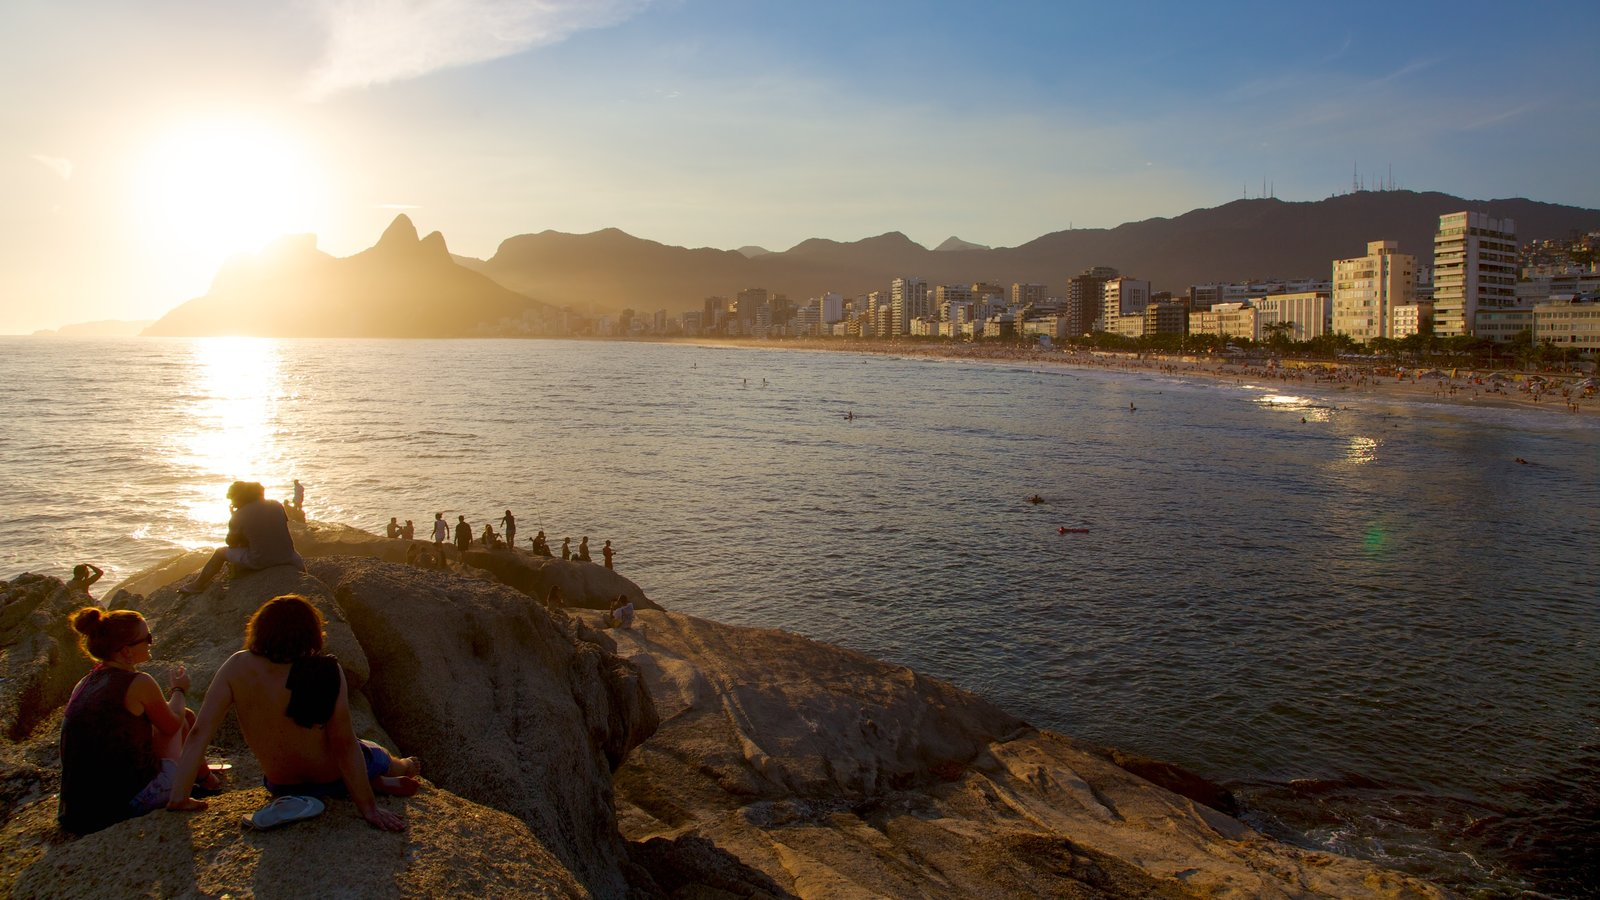 Rio de Janeiro which includes a sunset and general coastal views